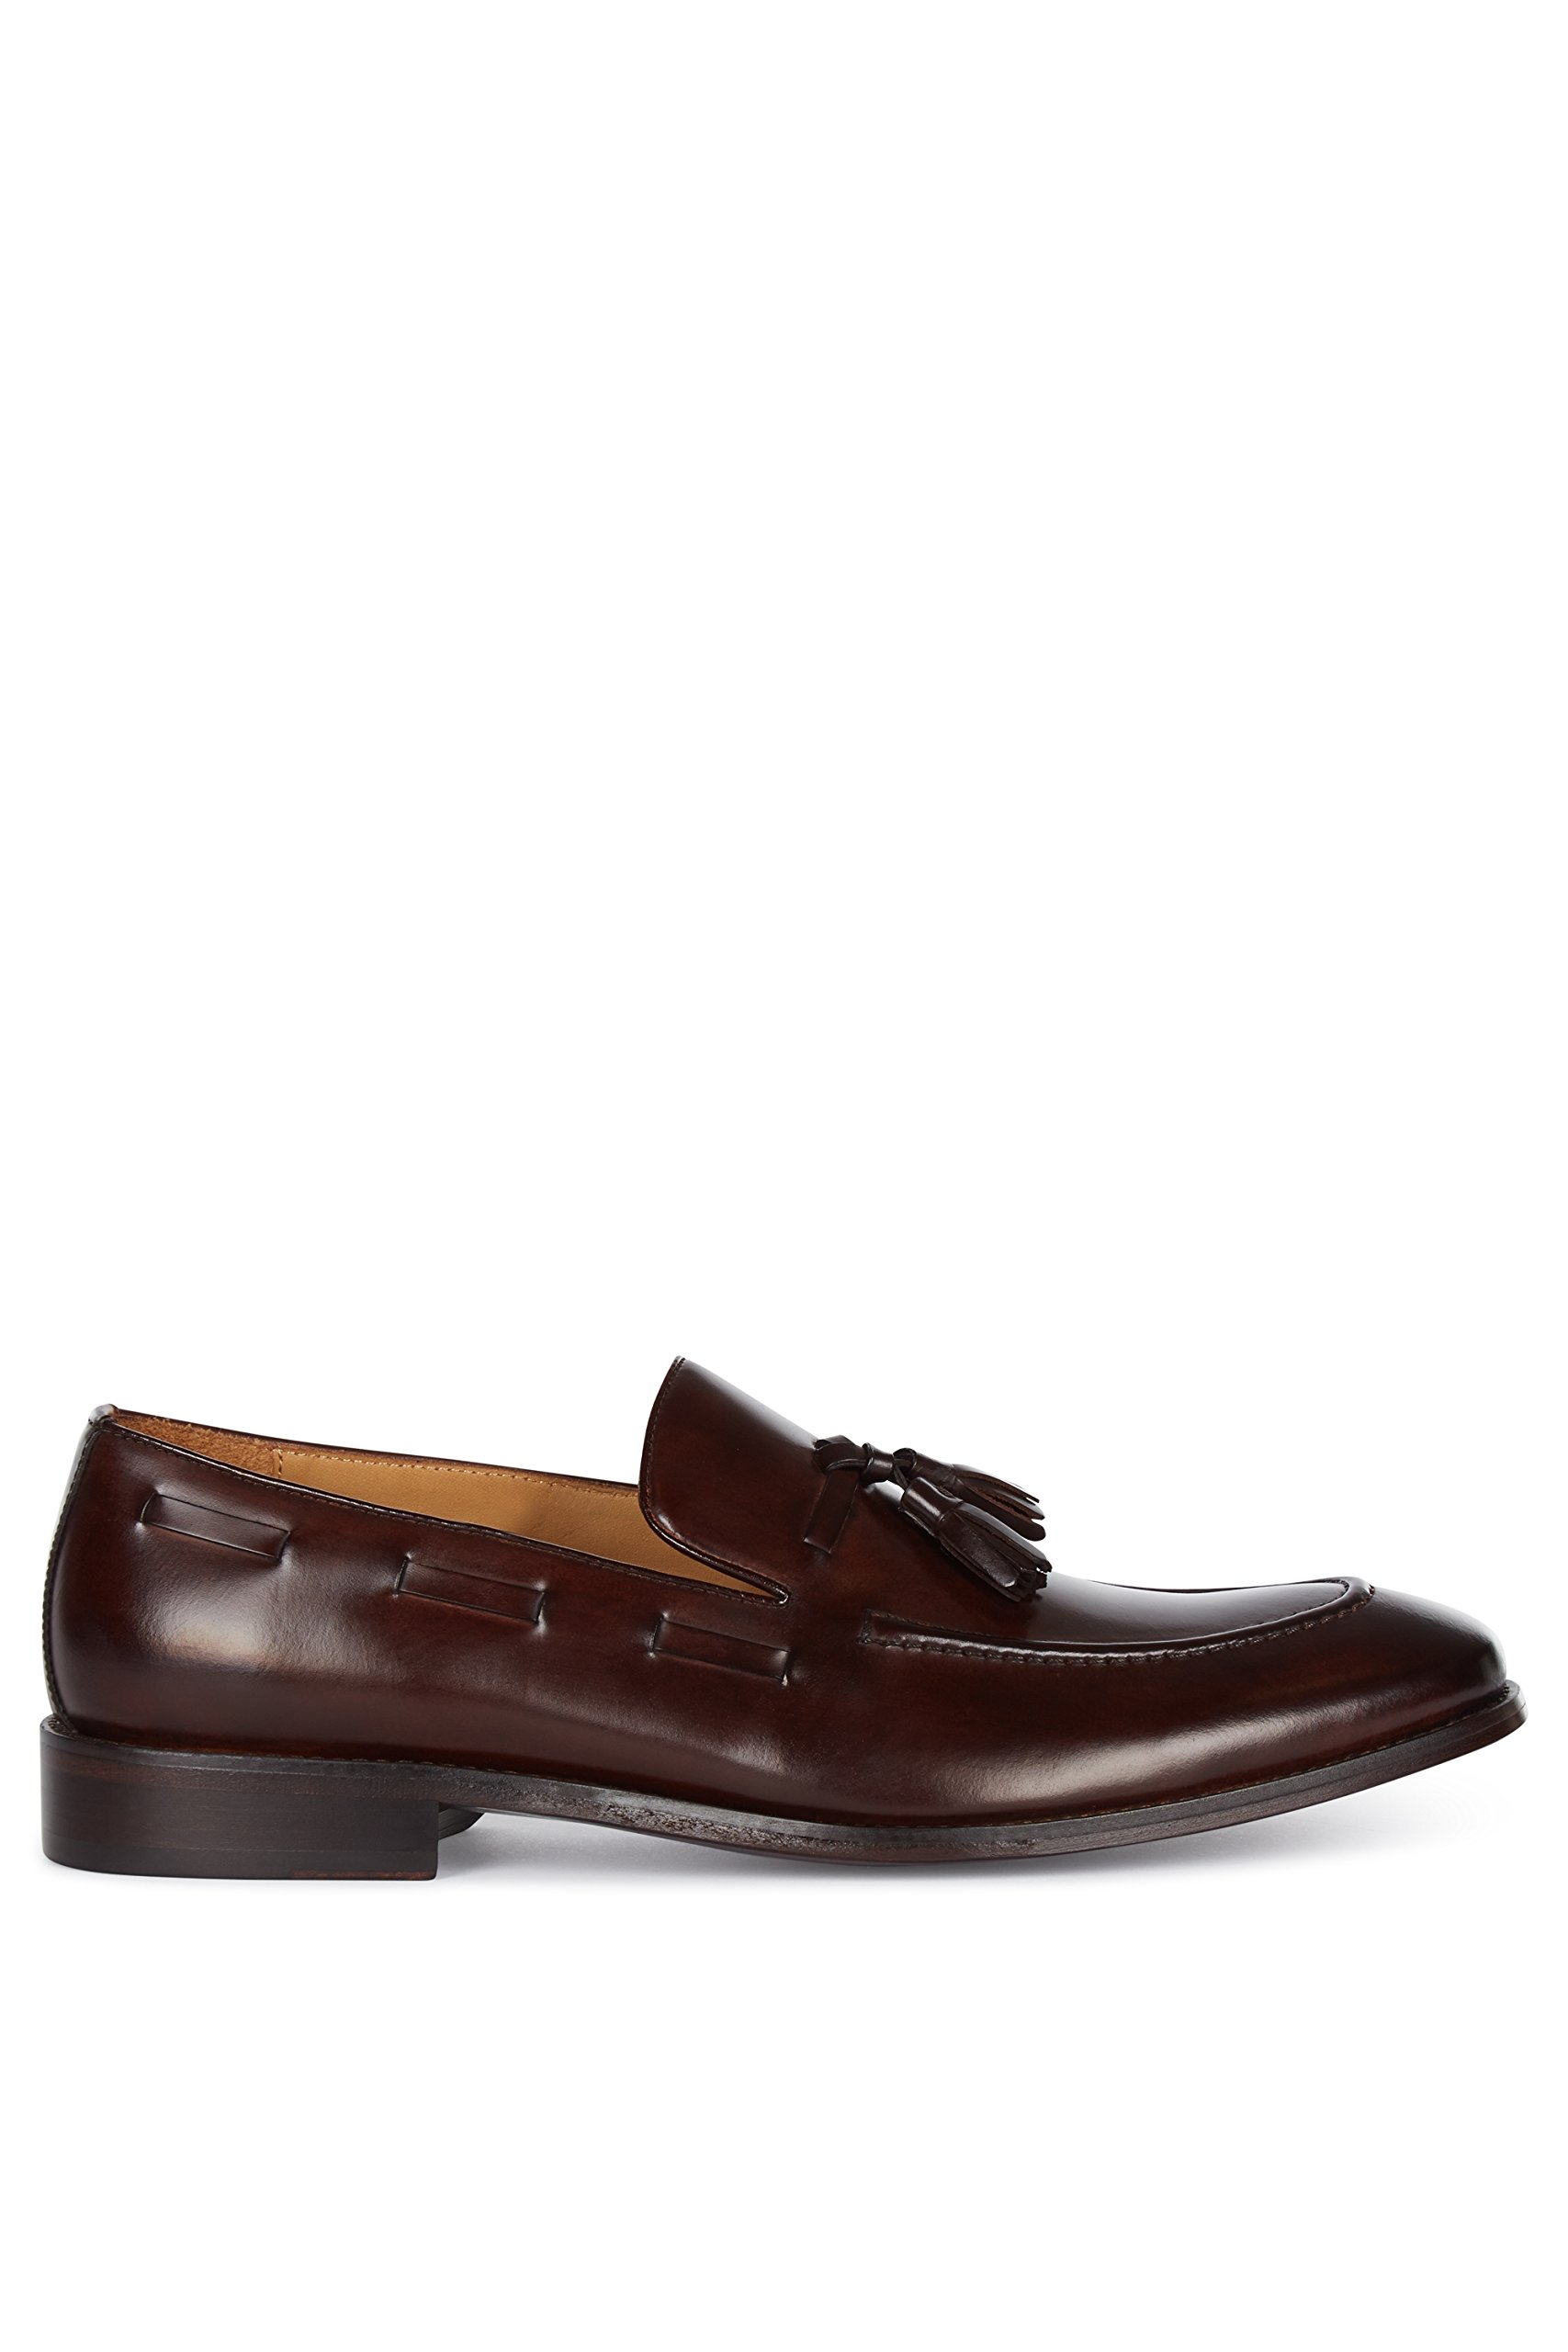 Hardy Amies Men's Brown Tassel Loafers 9.5 by Hardy Amies